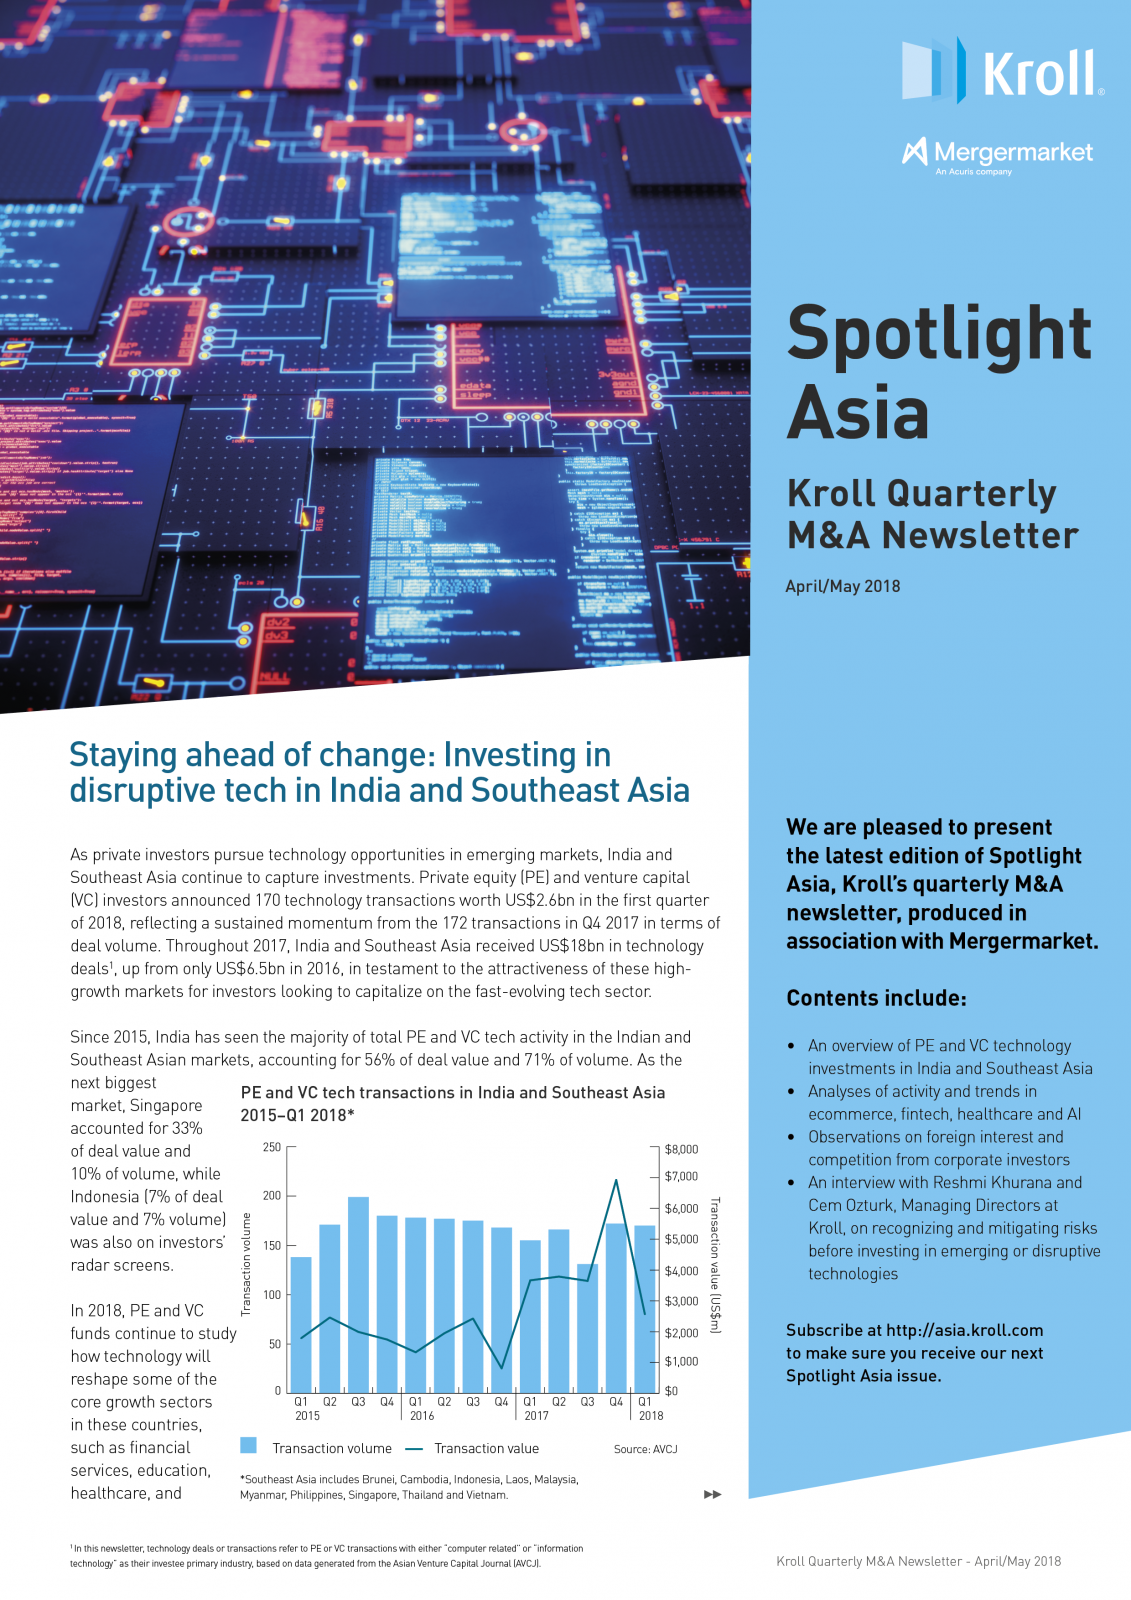 Staying ahead of change: Investing in disruptive tech in India and